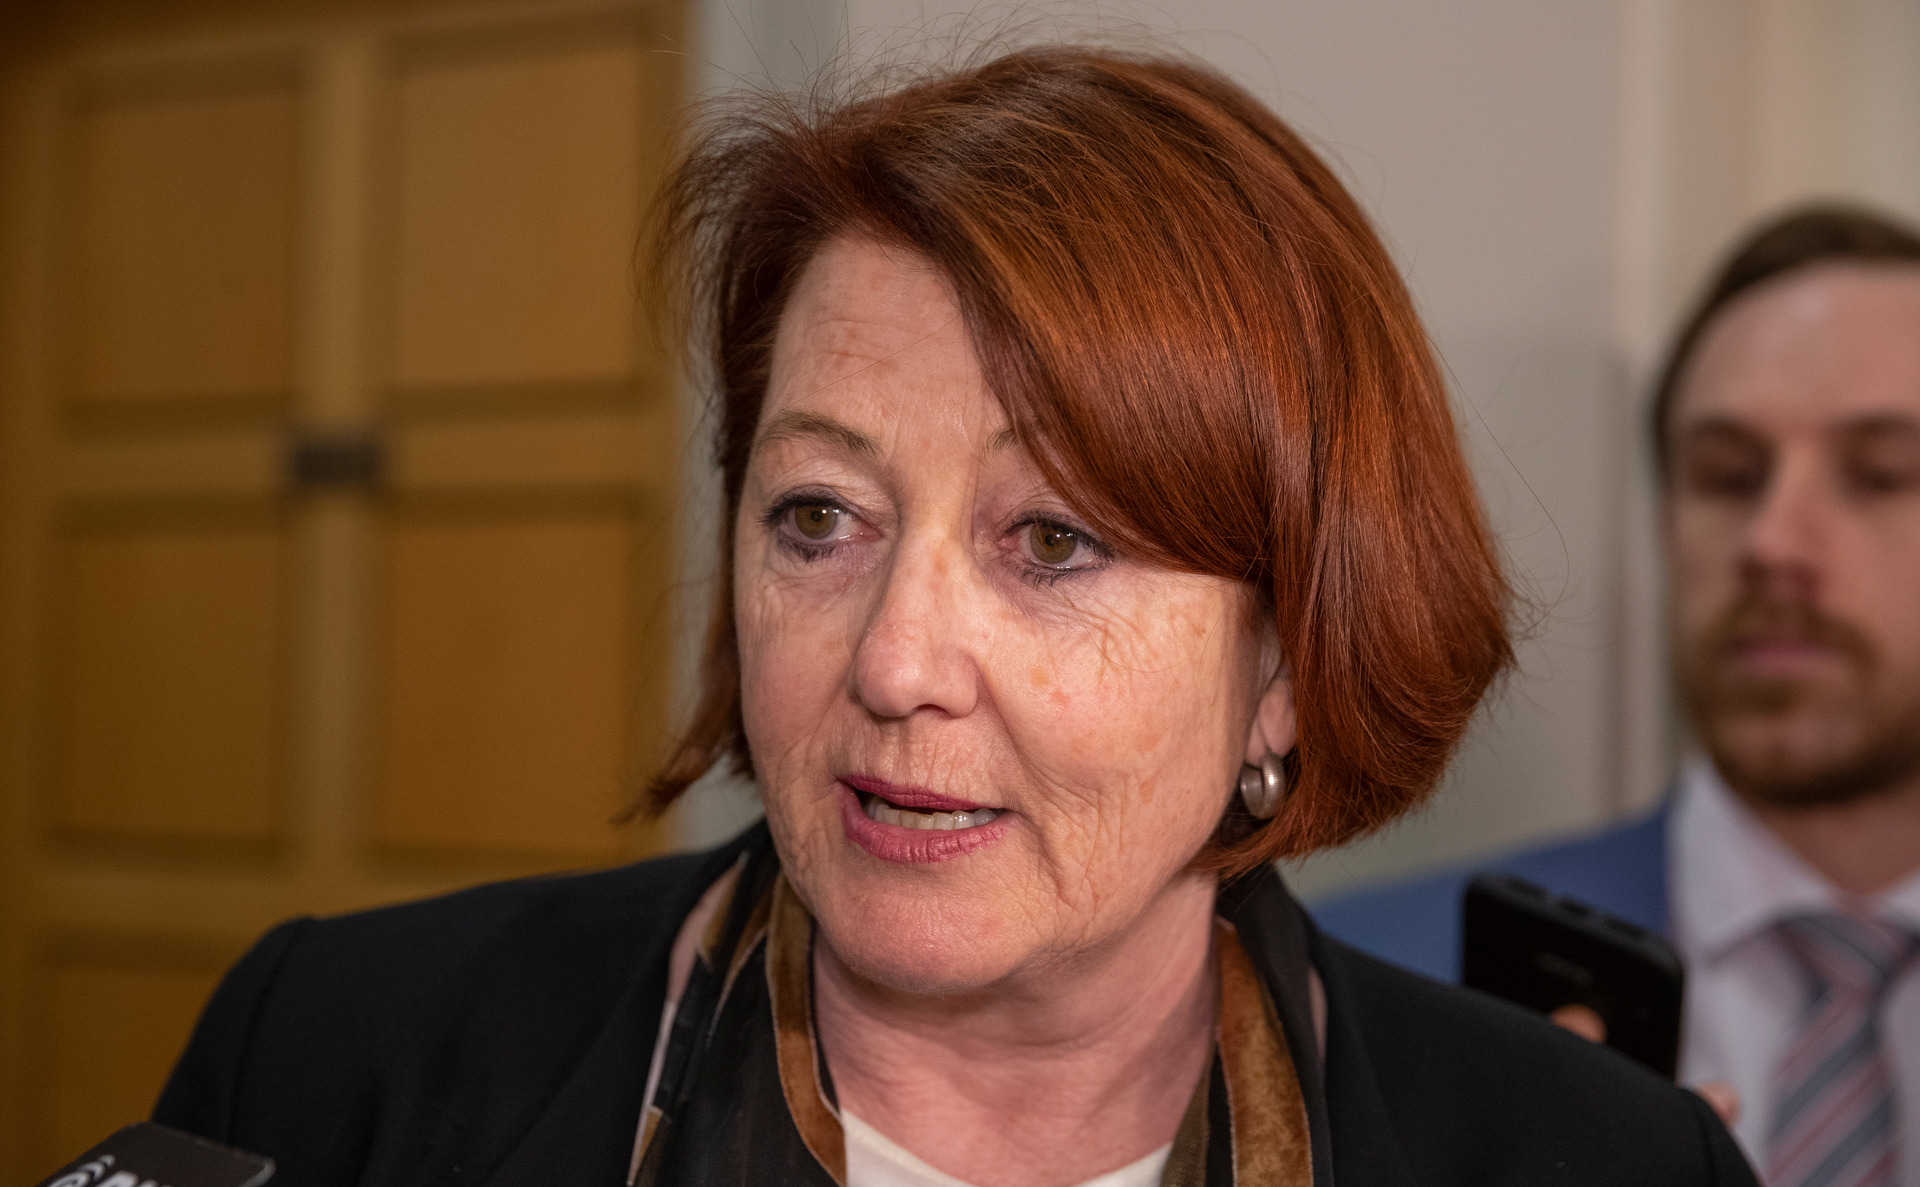 National MP Maggie Barry claims she was 'misrepresented' by Assistant Speaker Ruth Dyson